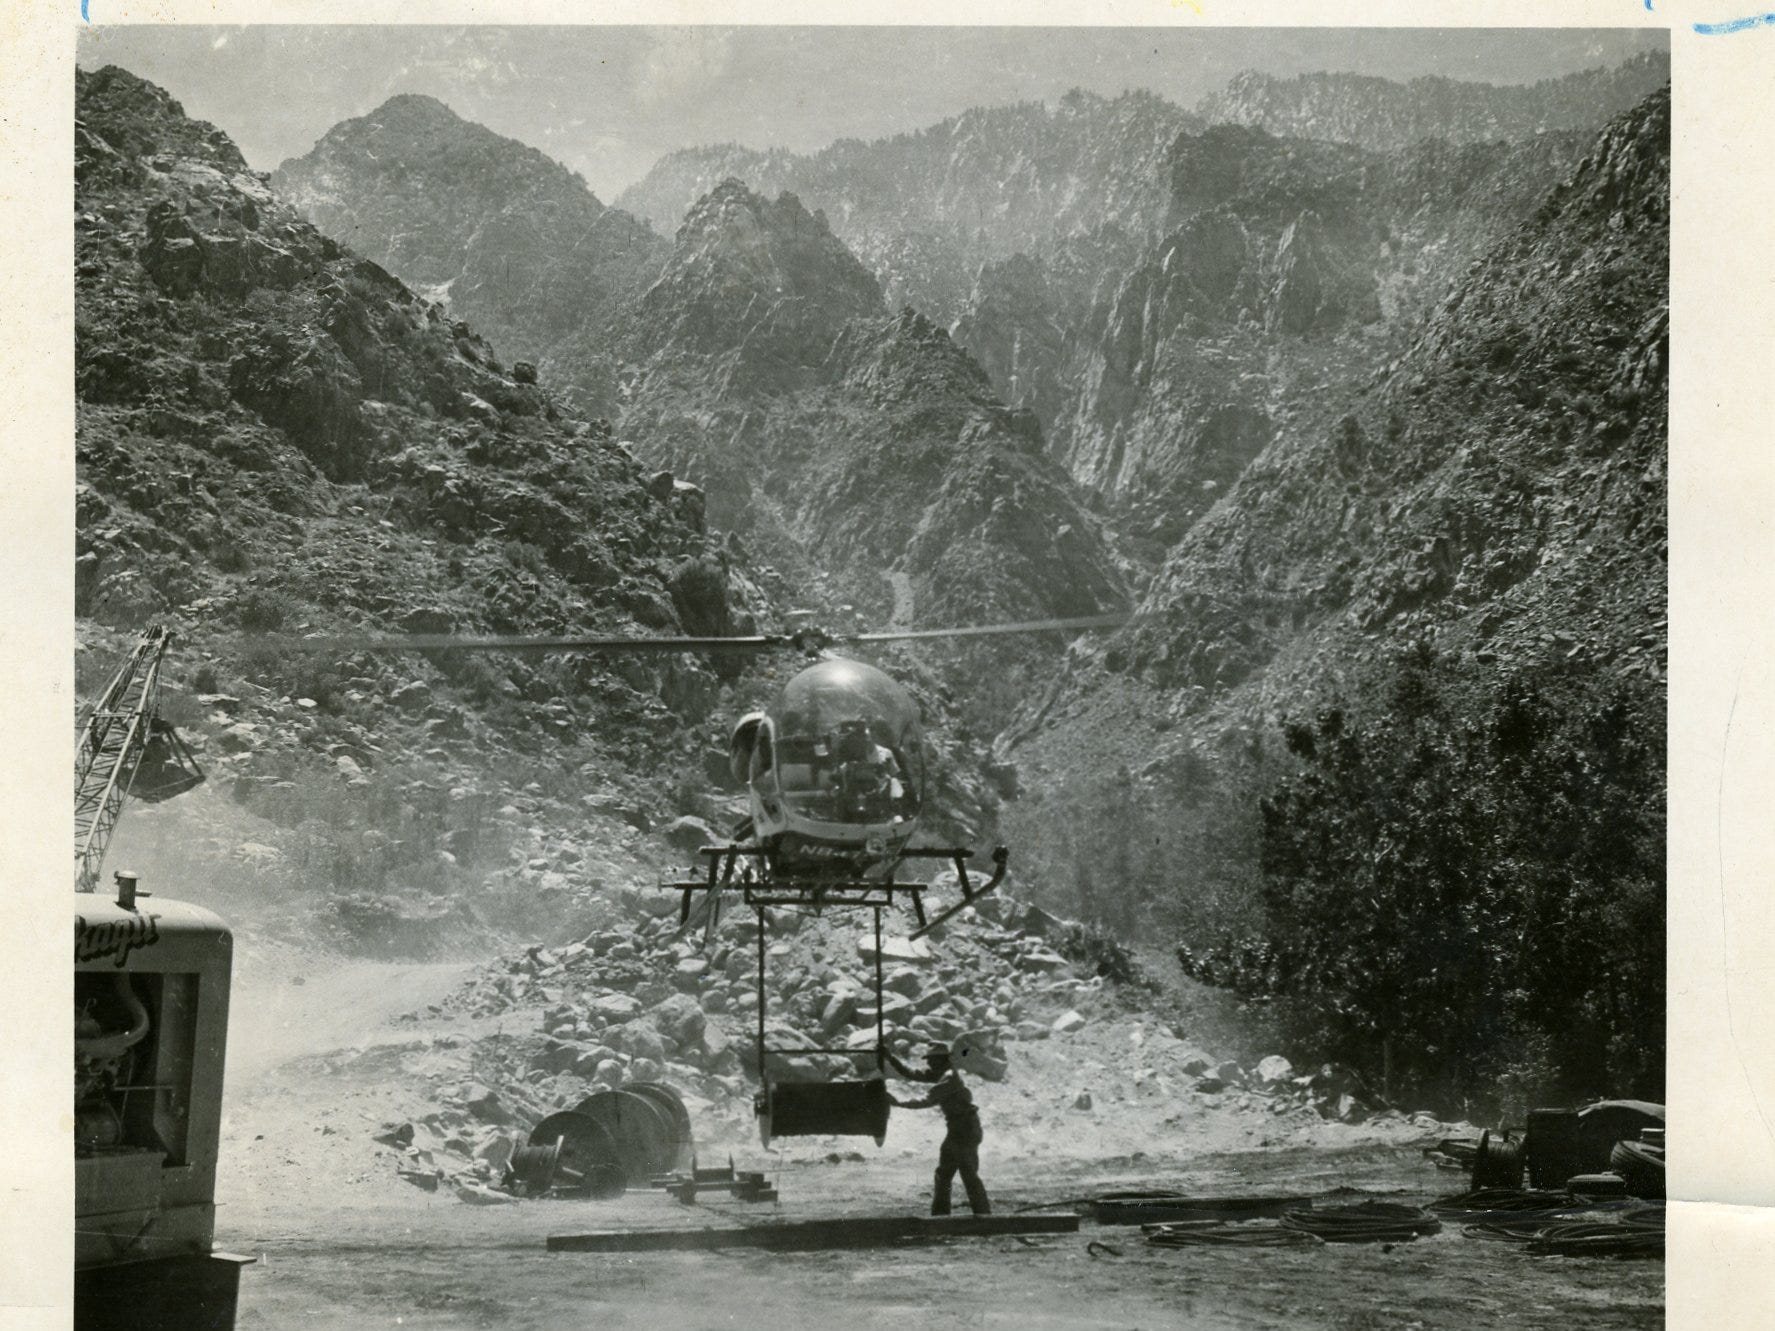 A helicopter moves supplies to build the tram structures in this undated Palm Springs Aerial Tram photo.